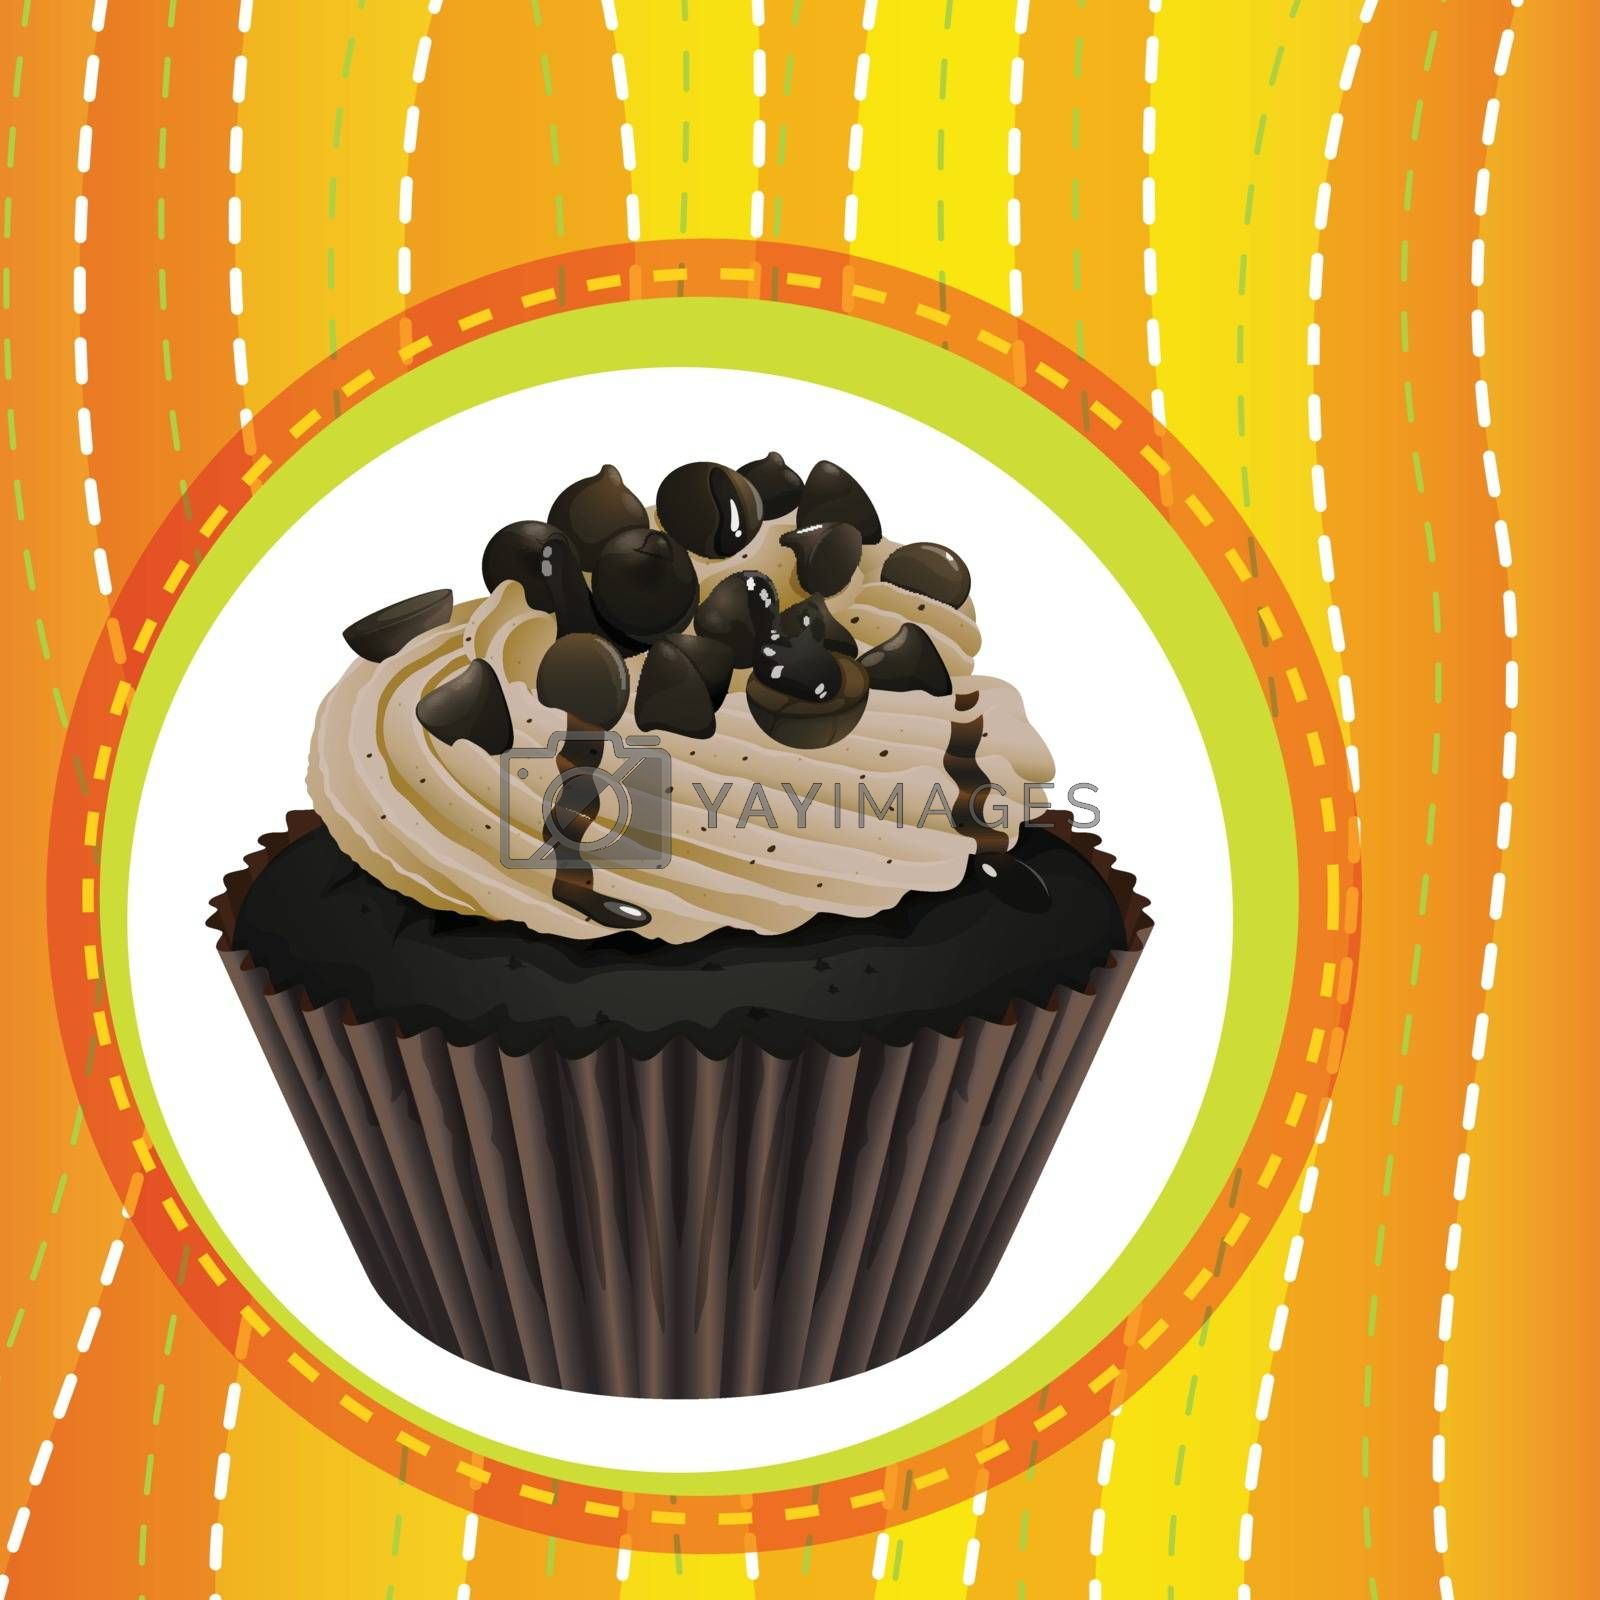 Illustration of an isolated cupcake and a wallpaper